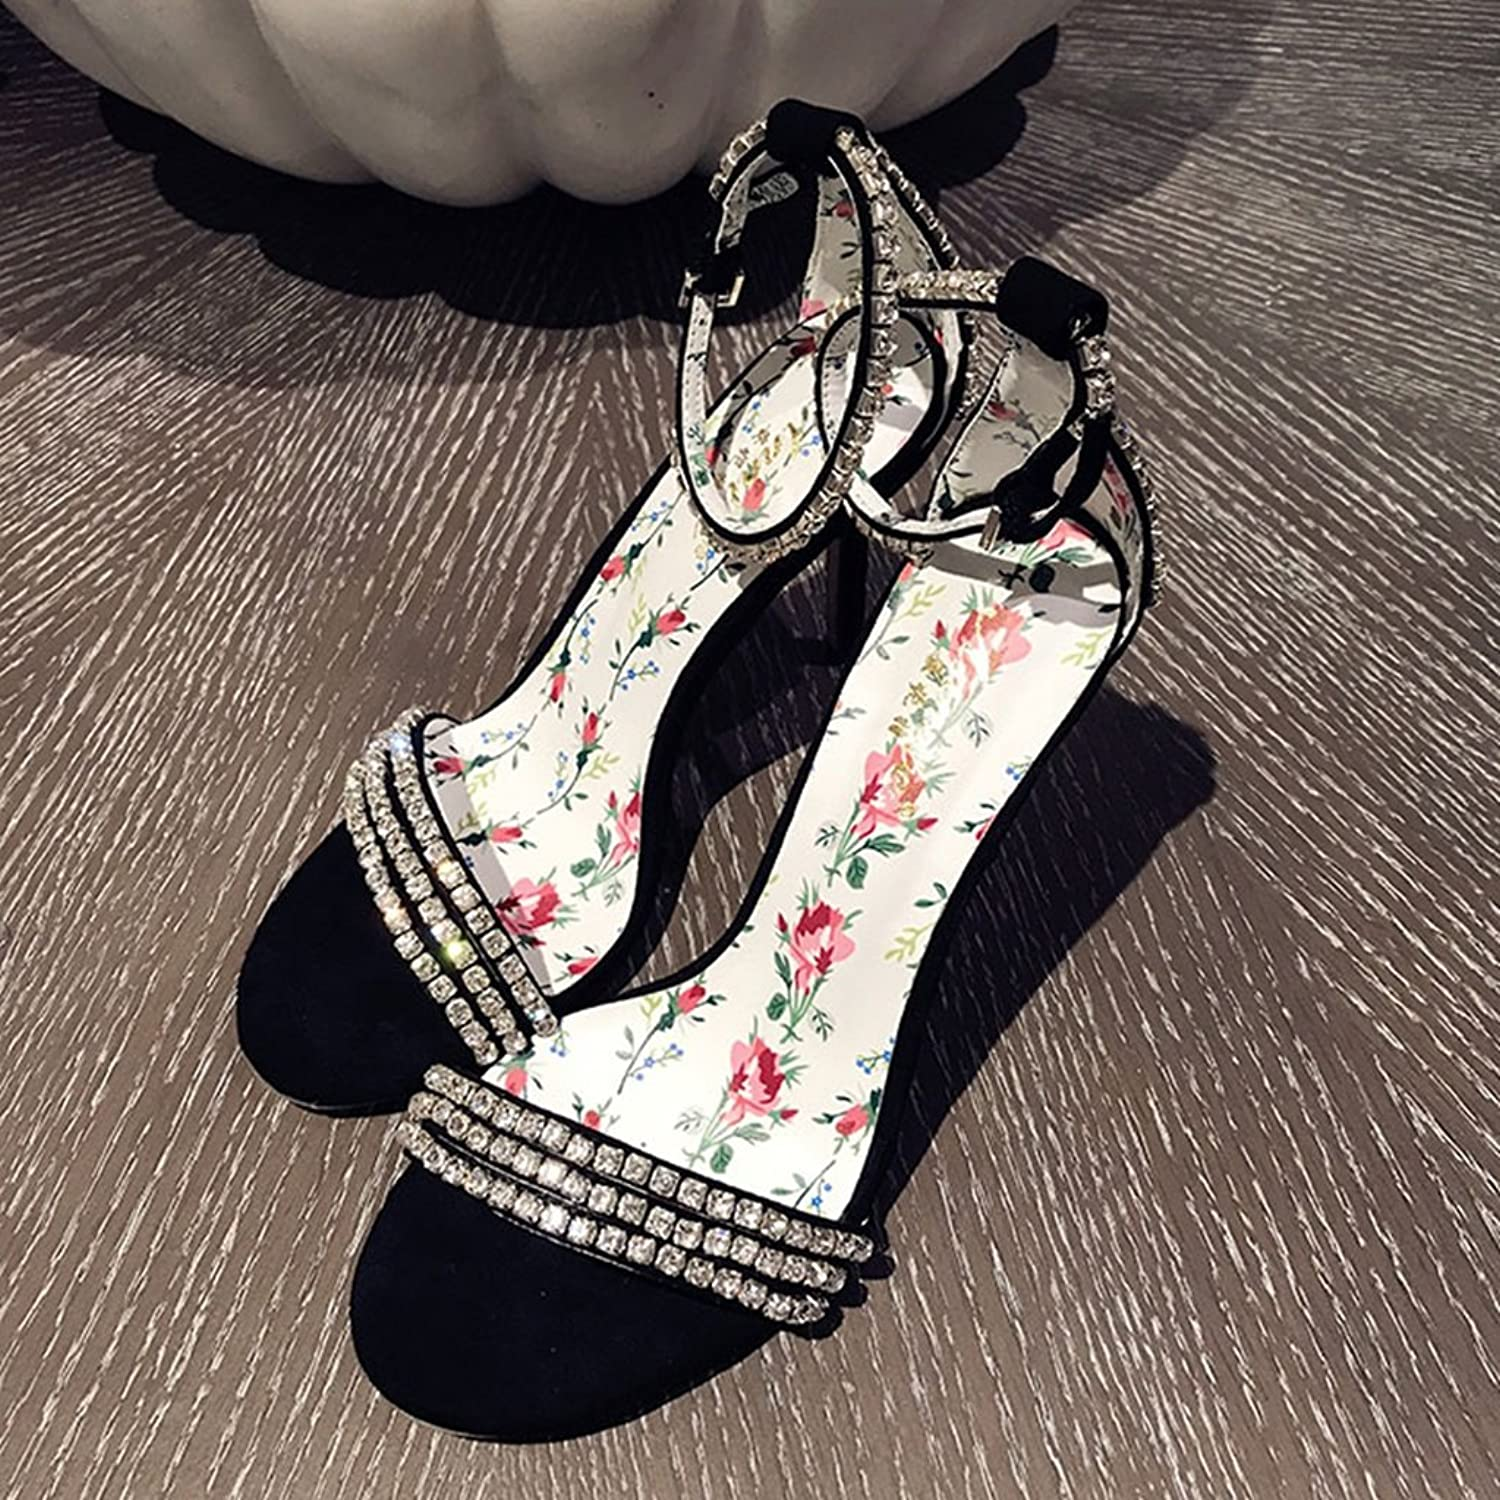 Sandals Girls shoes Sandals Hand Sew shoes Rhinestone Heels Summer Flash Sandals Heel Height 9cm (color   Black, Size   35)